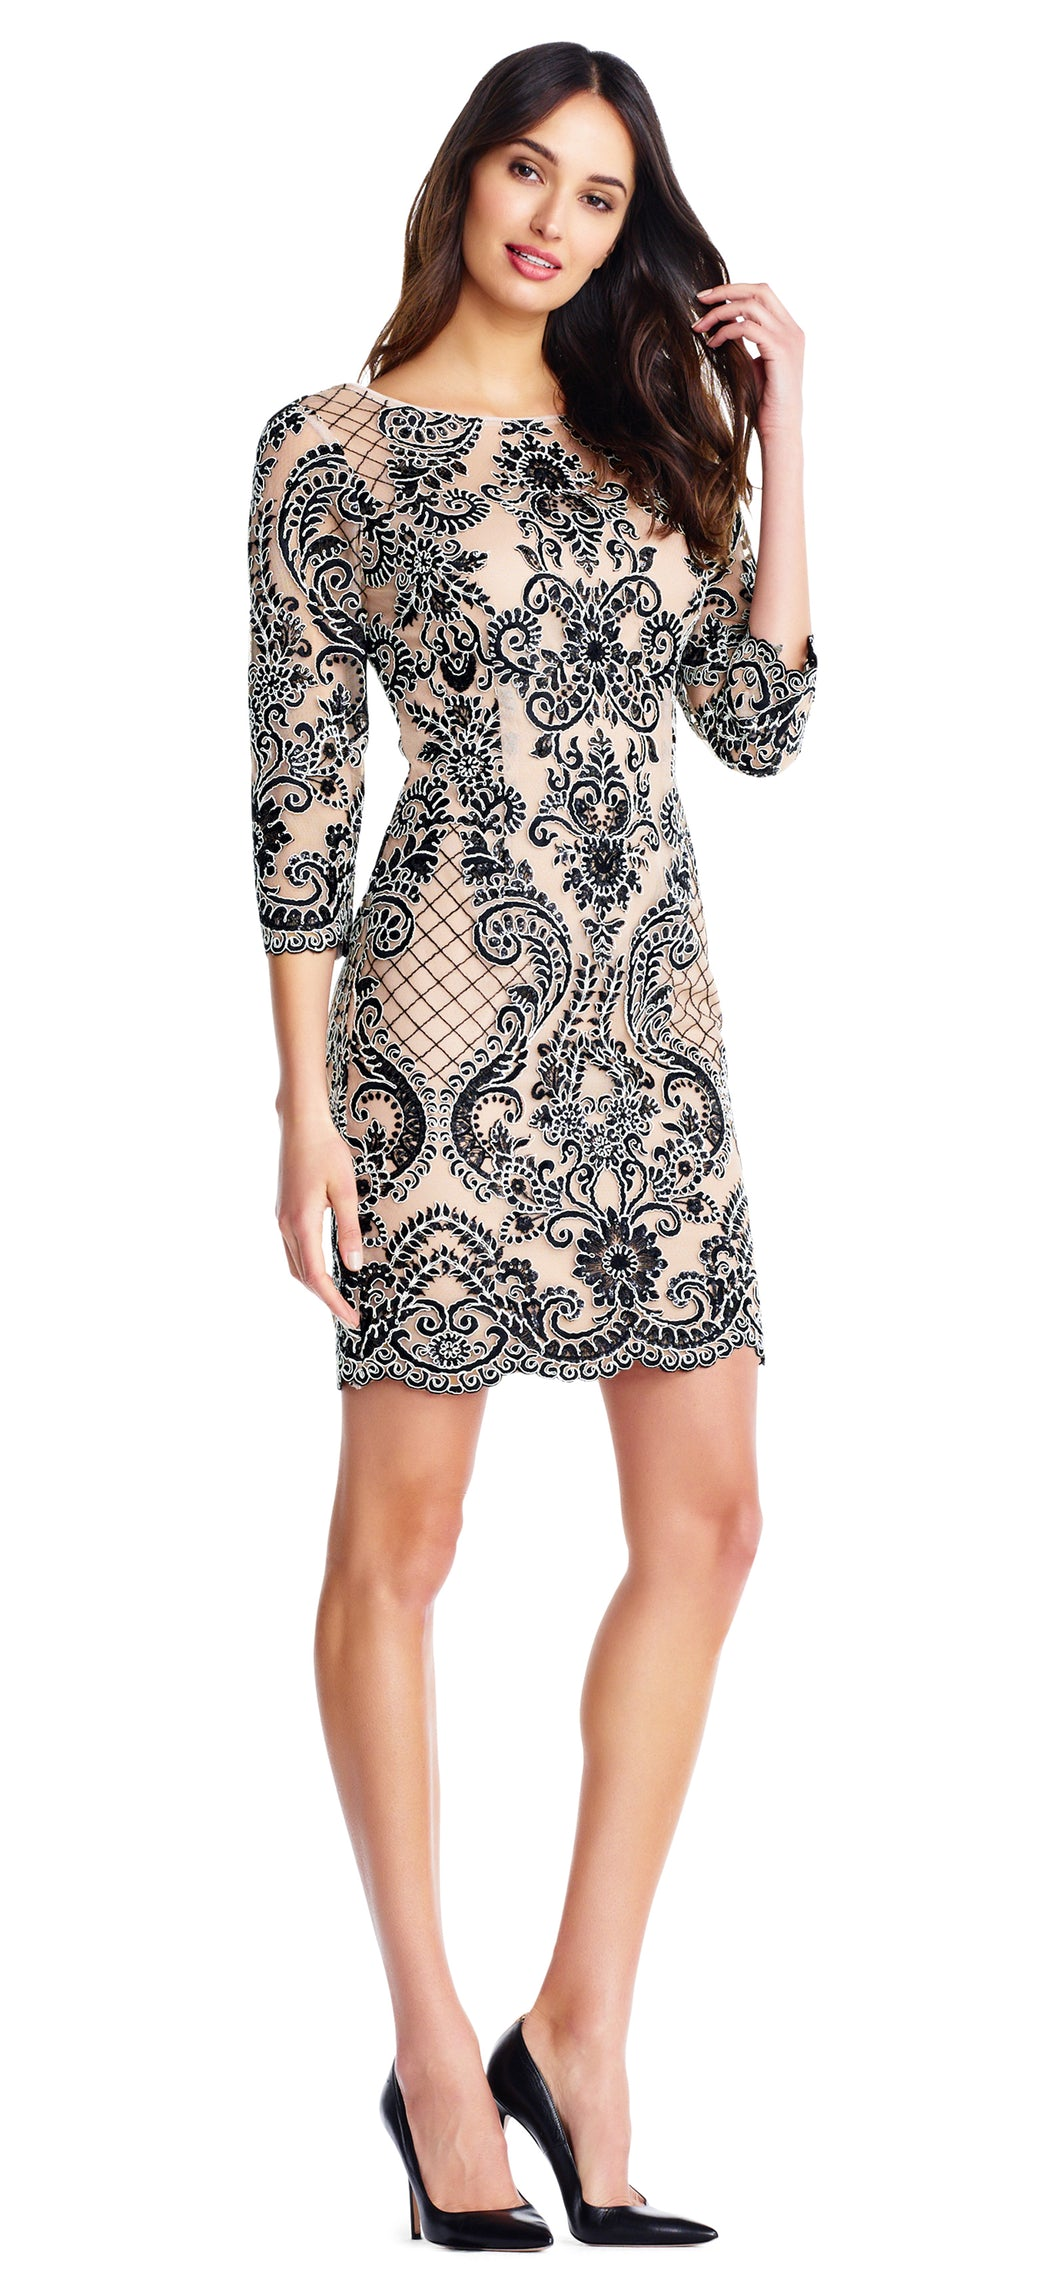 Long-sleeved Embroidered Dress - Nude/Black